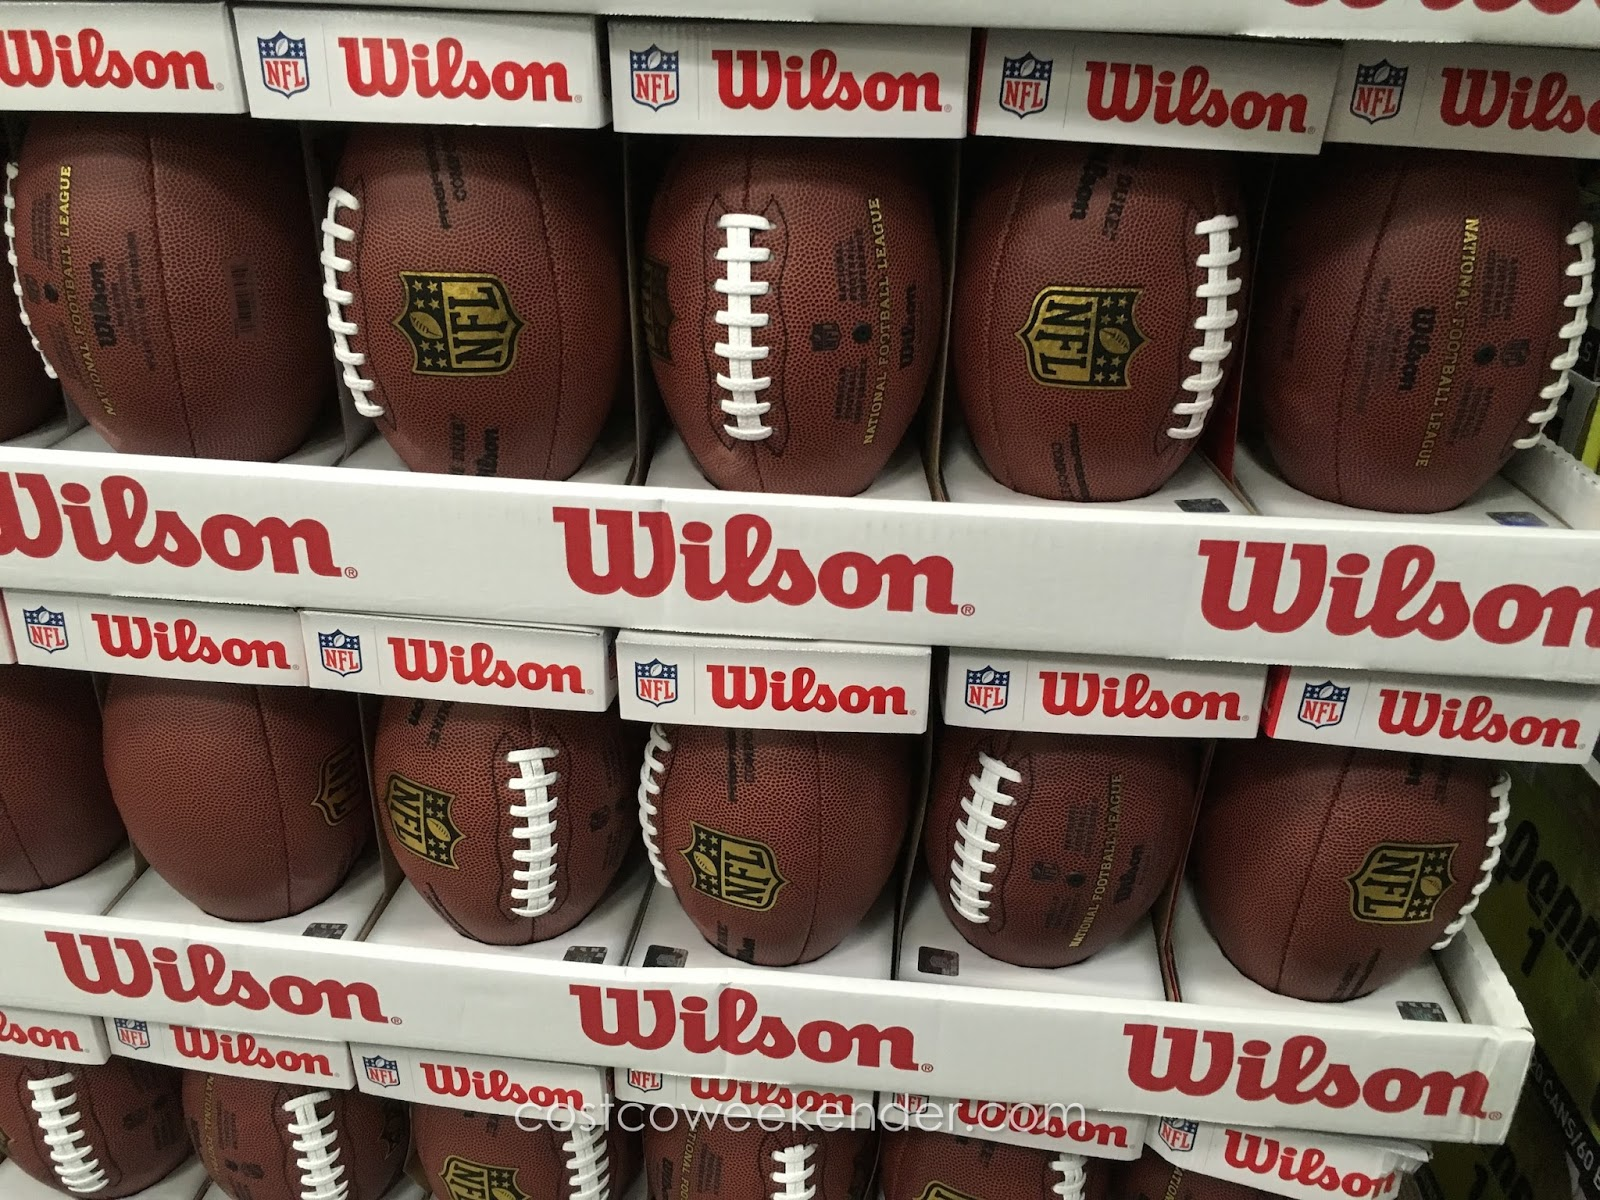 Be like Odell Beckham Jr. with the Wilson Replica NFL Football & Wilson Replica NFL Football | Costco Weekender